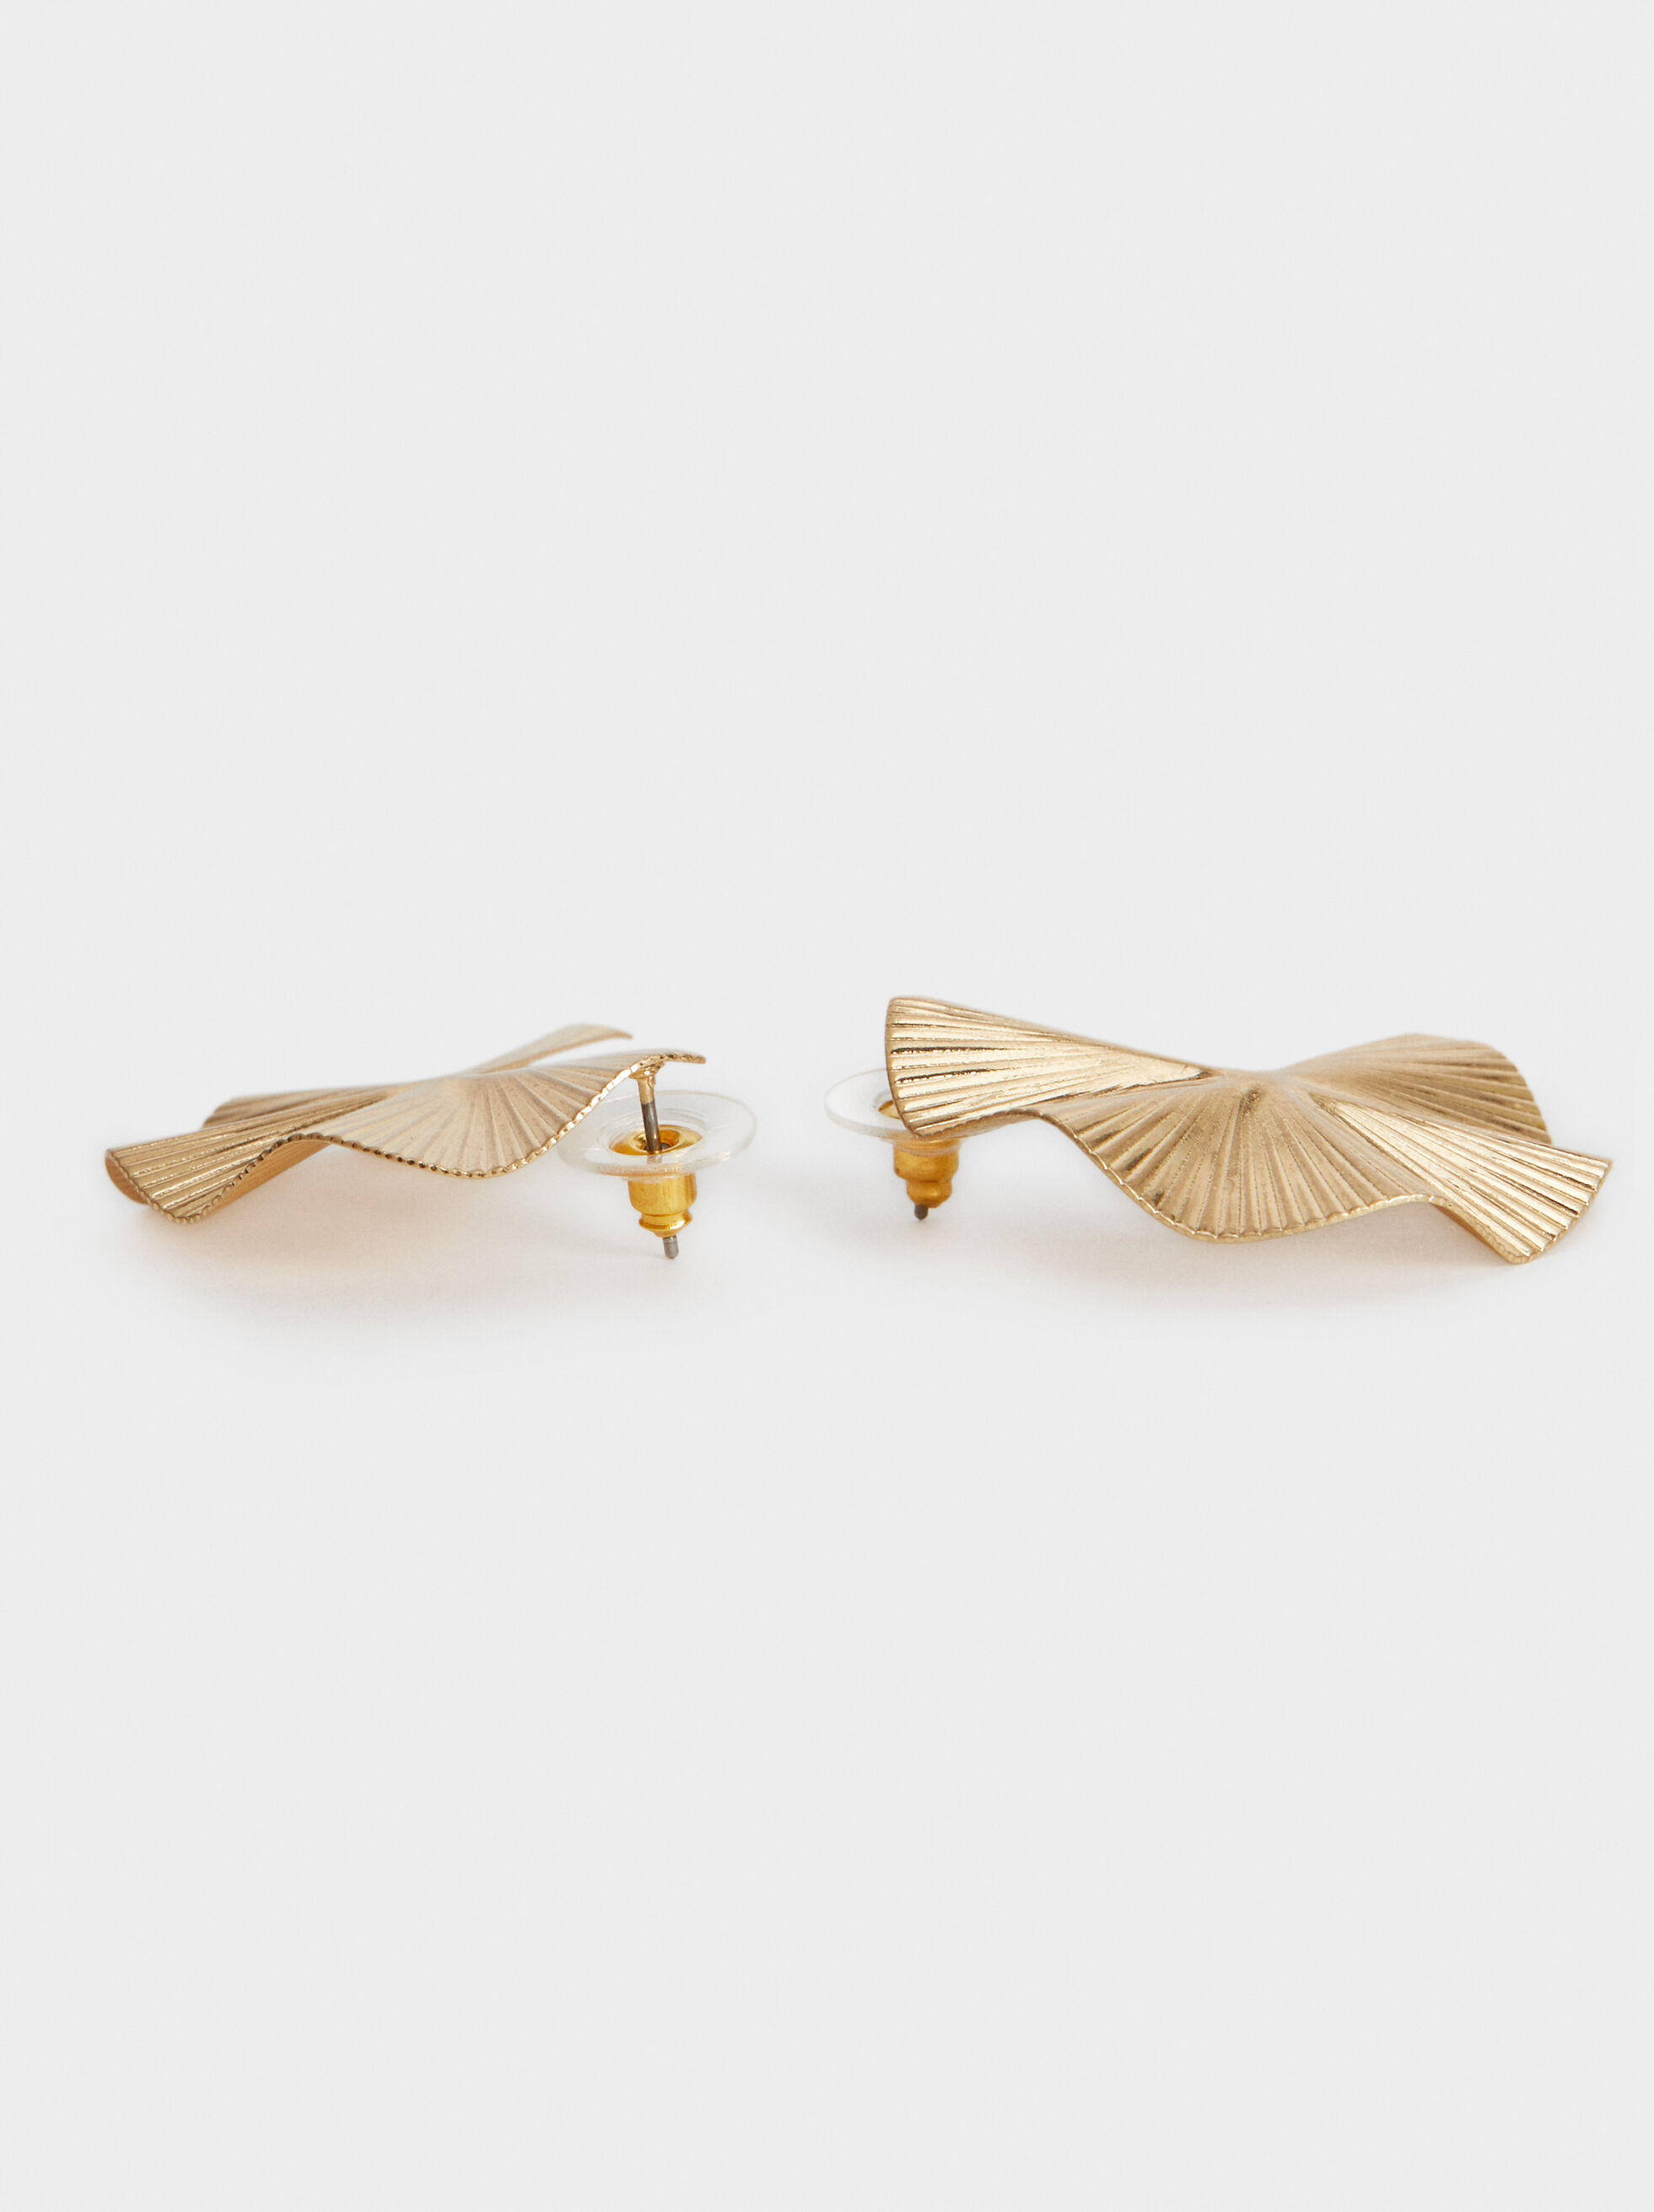 Medium Wavy Earrings, Golden, hi-res